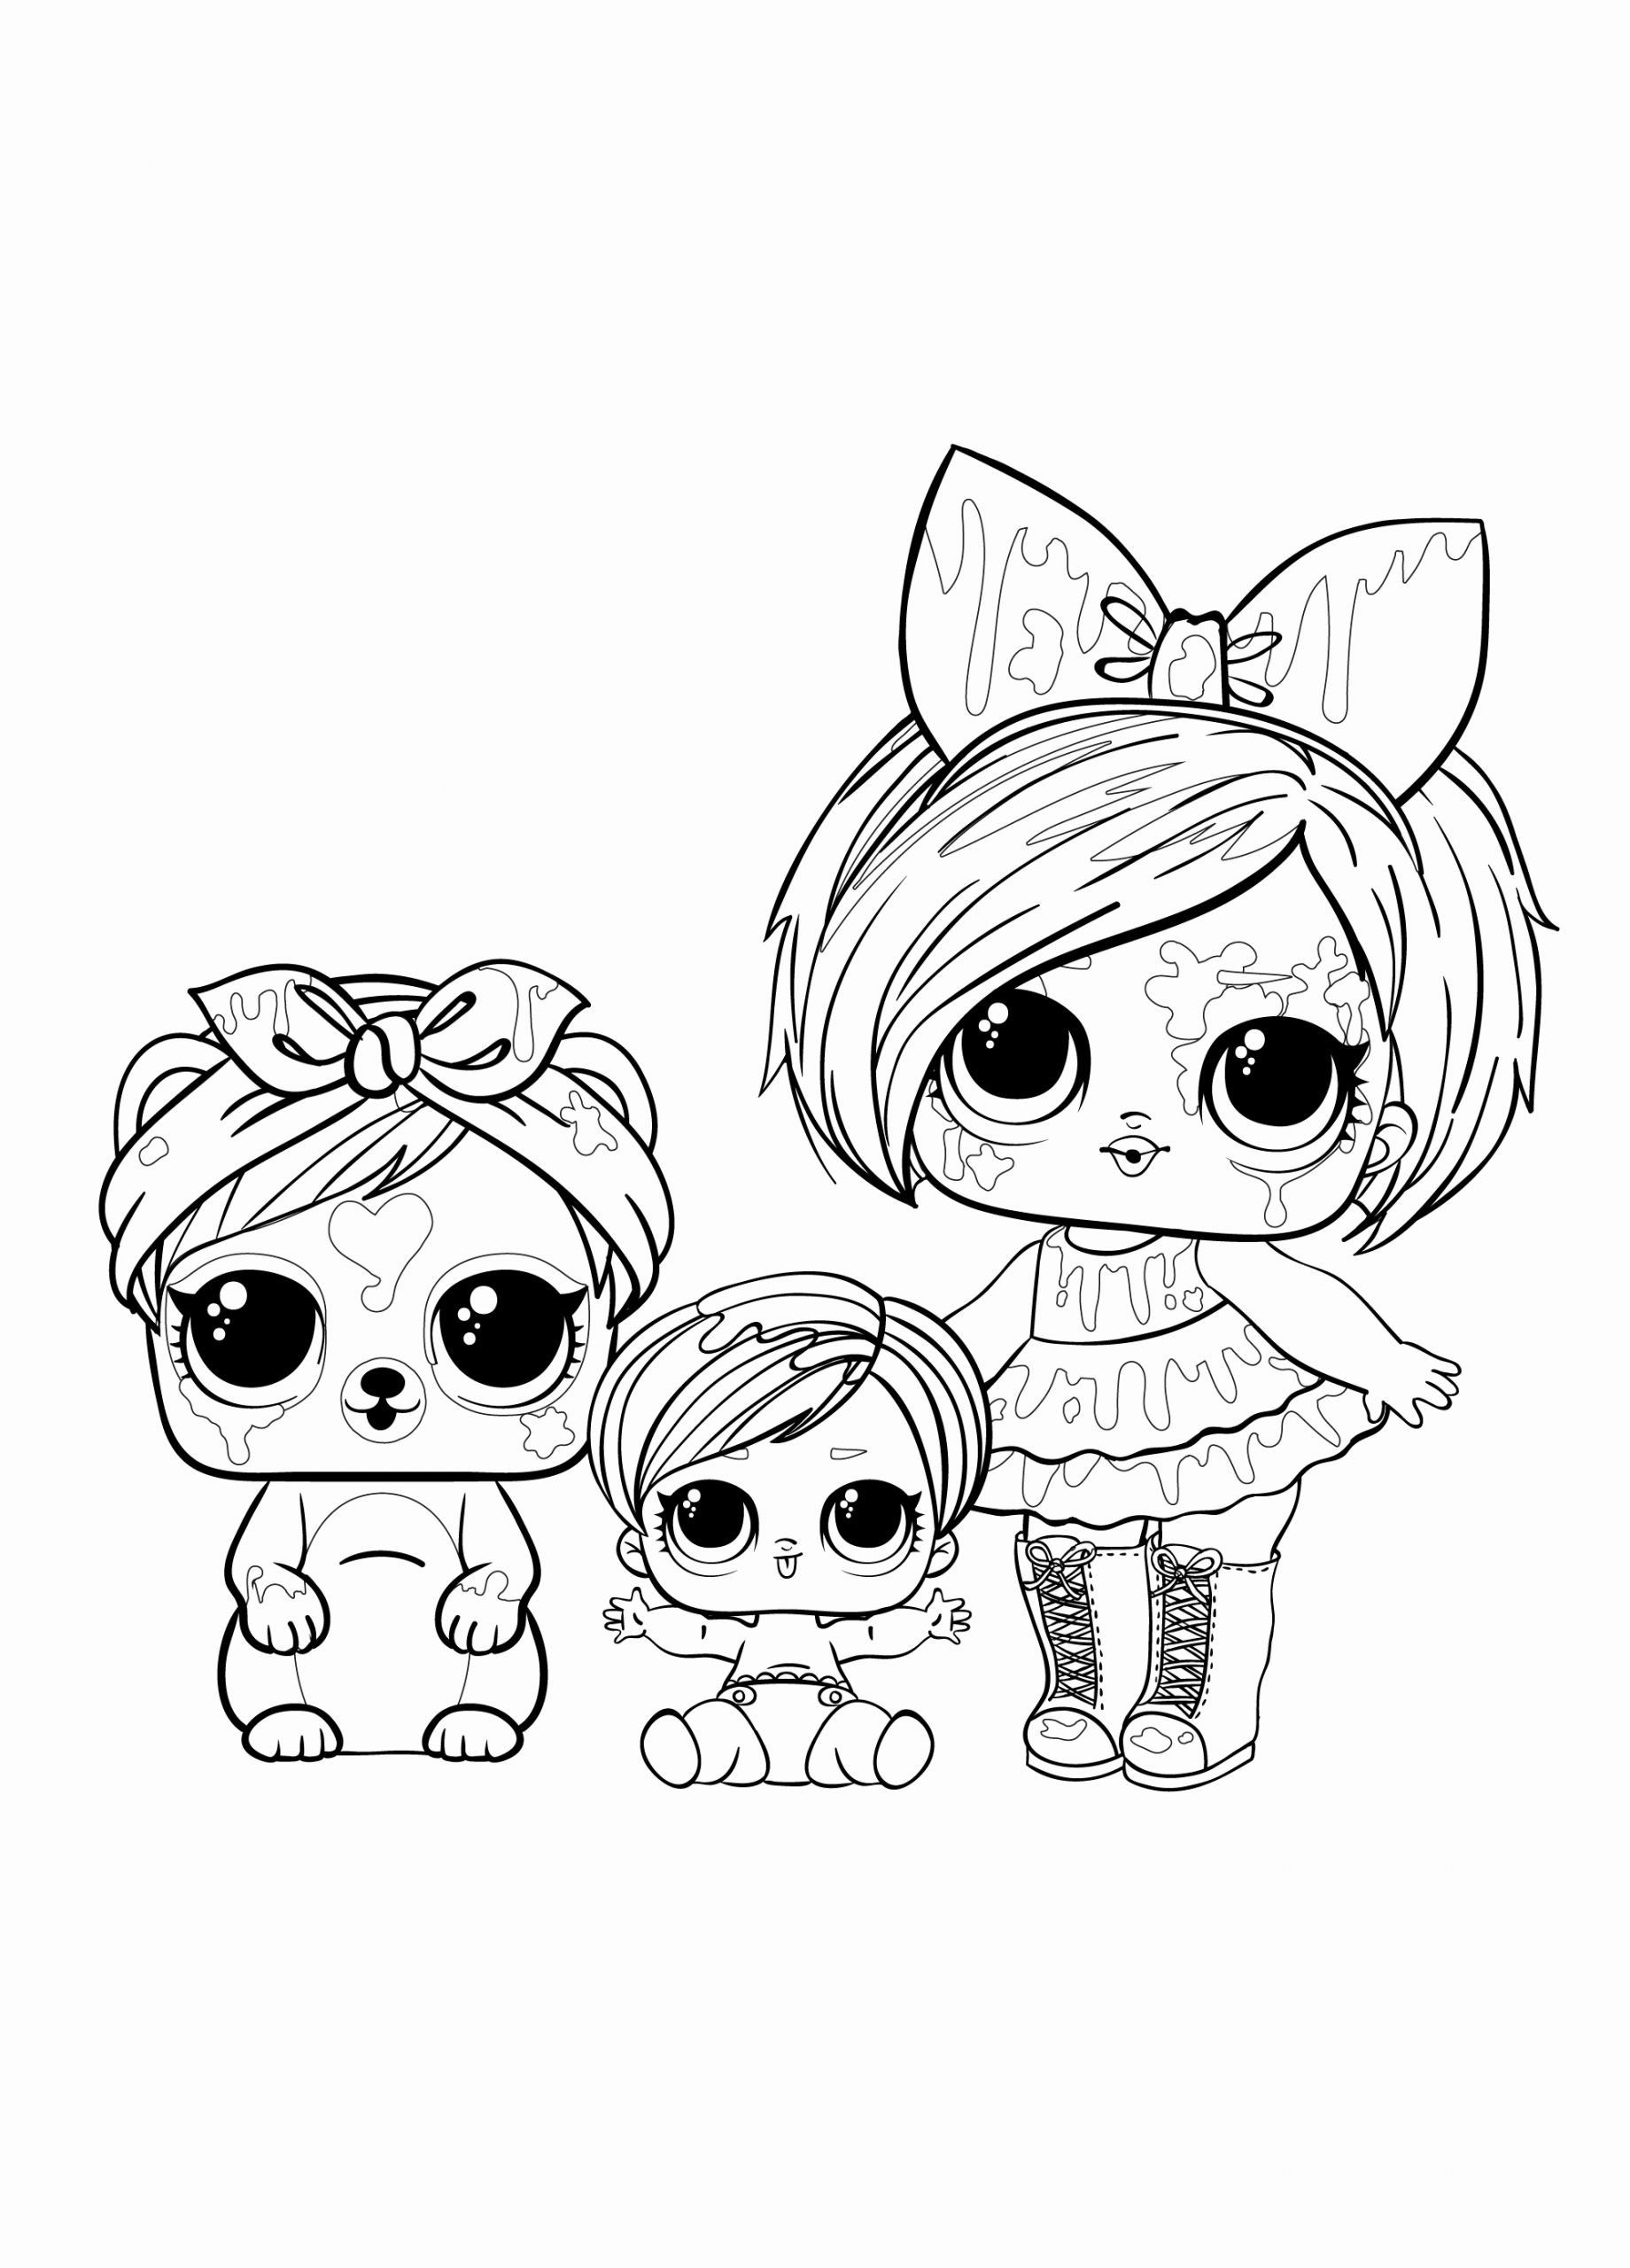 Winter Coloring Sheets For Kids Lovely Coloring Pages Lol Surprise Hairgoals And Lol Surpr In 2020 Halloween Coloring Sheets Mermaid Coloring Pages Cool Coloring Pages